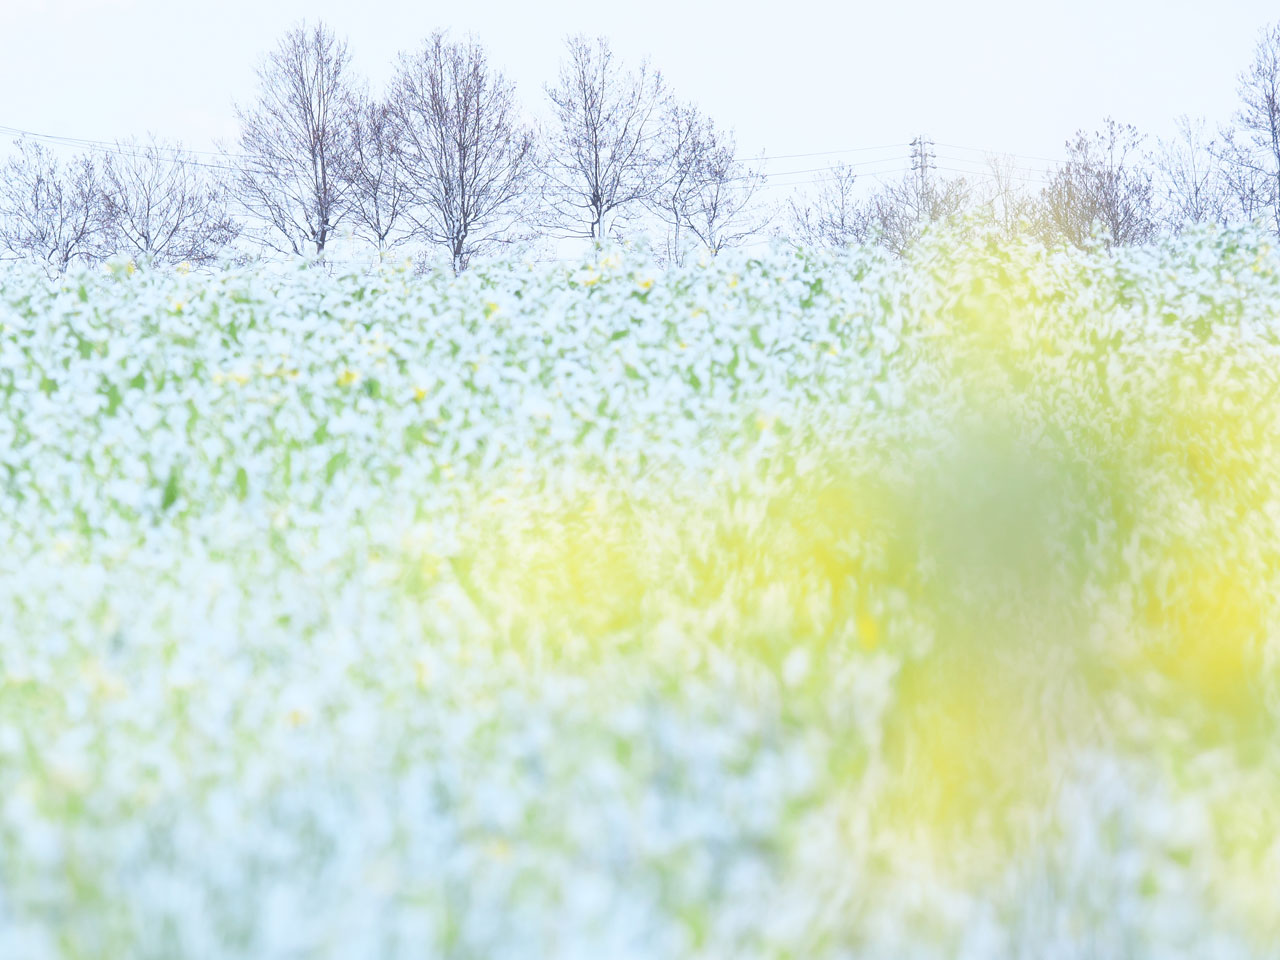 福島潟の雪と菜の花3:LUMIX DMC-GX7MK2K + LUMIX G VARIO 100-300mm/F4.0-5.6 II/POWER O.I.S. H-FSA100300